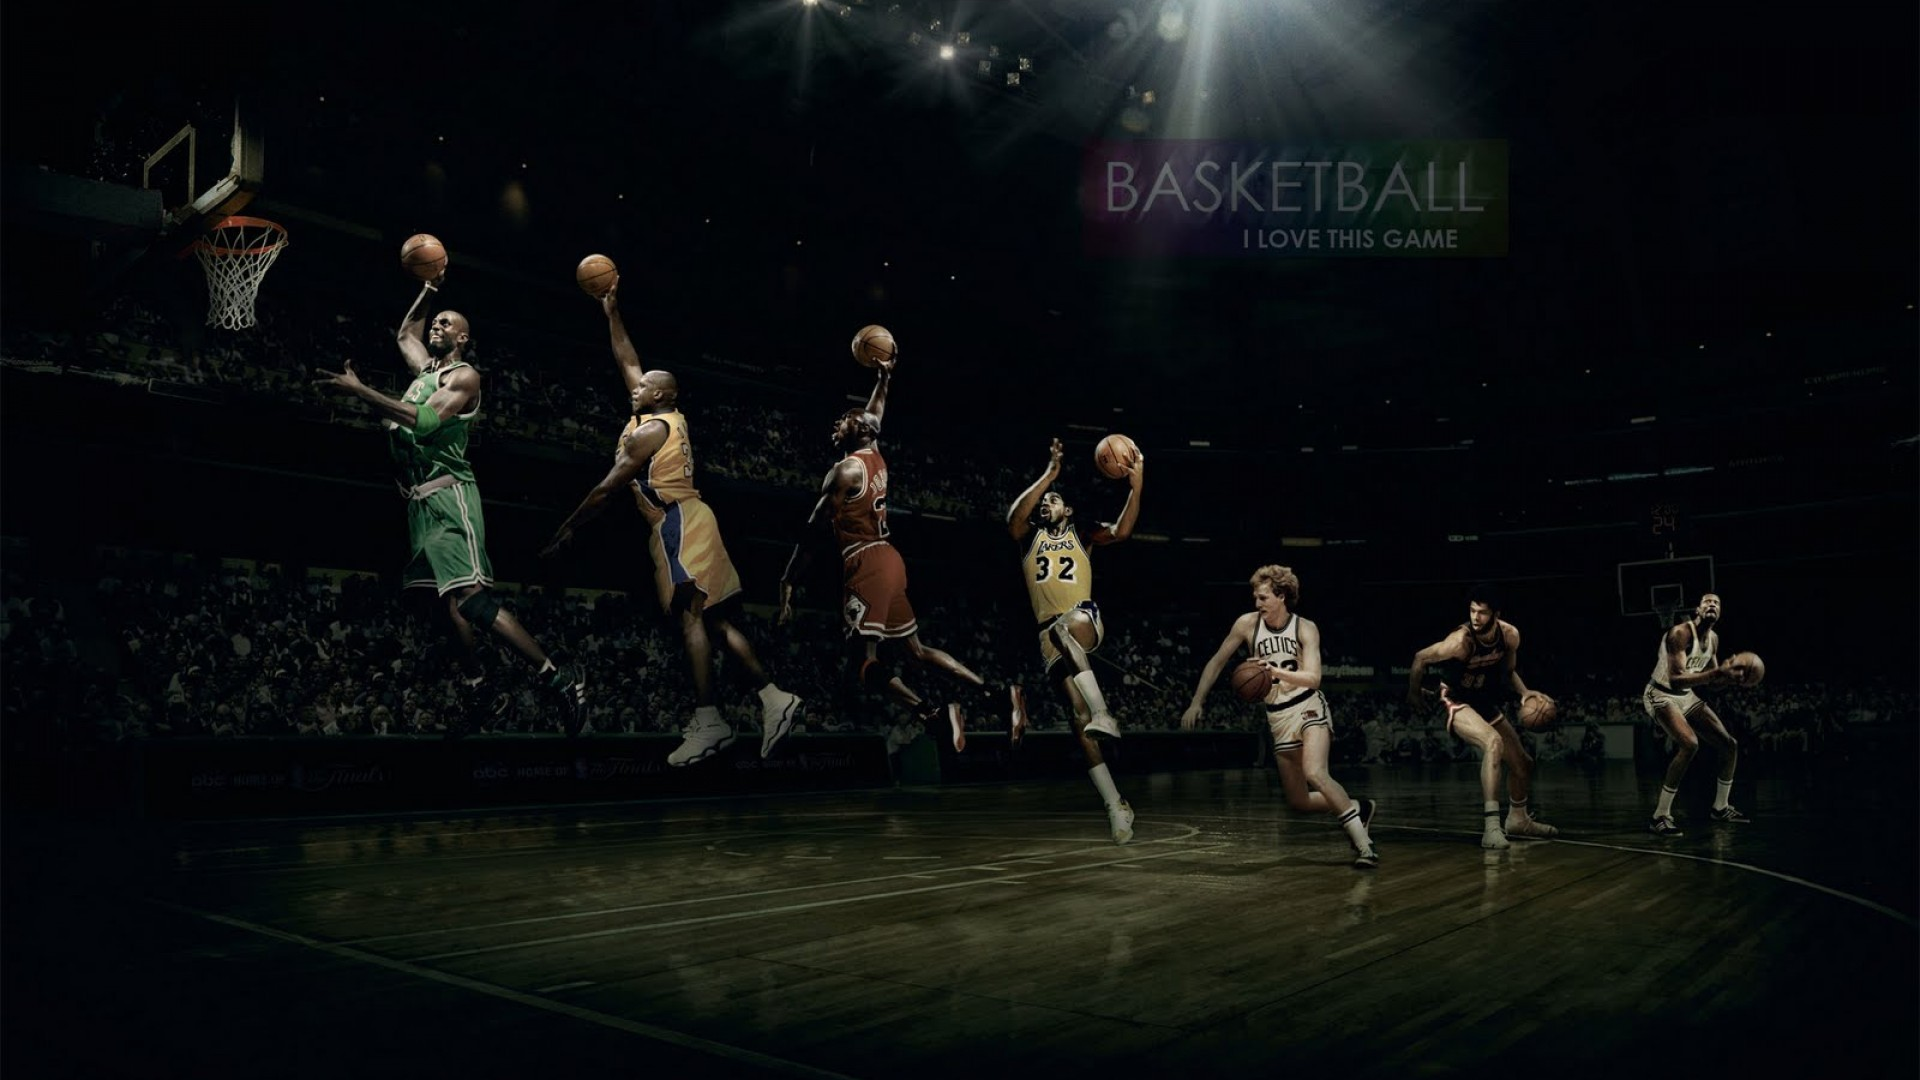 Cool Basketball Desktop Backgrounds: 49+ Basketball Backgrounds ·① Download Free Amazing Full